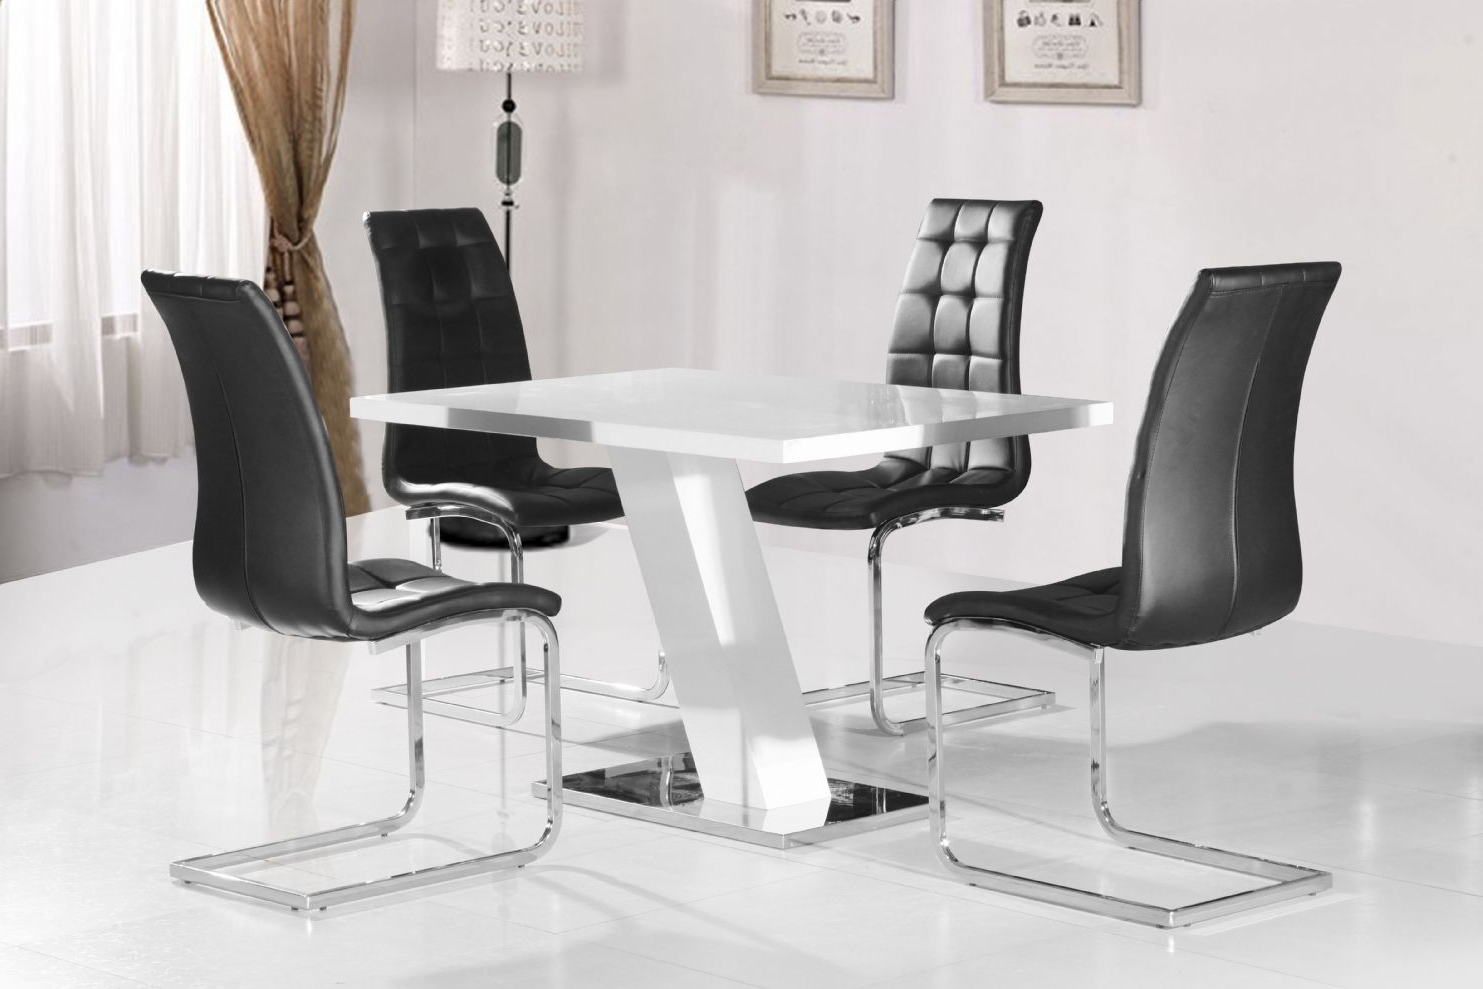 White Gloss Dining Tables 120Cm With Regard To Most Recently Released Grazia White High Gloss Contemporary Designer 120 Cm Compact Dining (View 11 of 25)